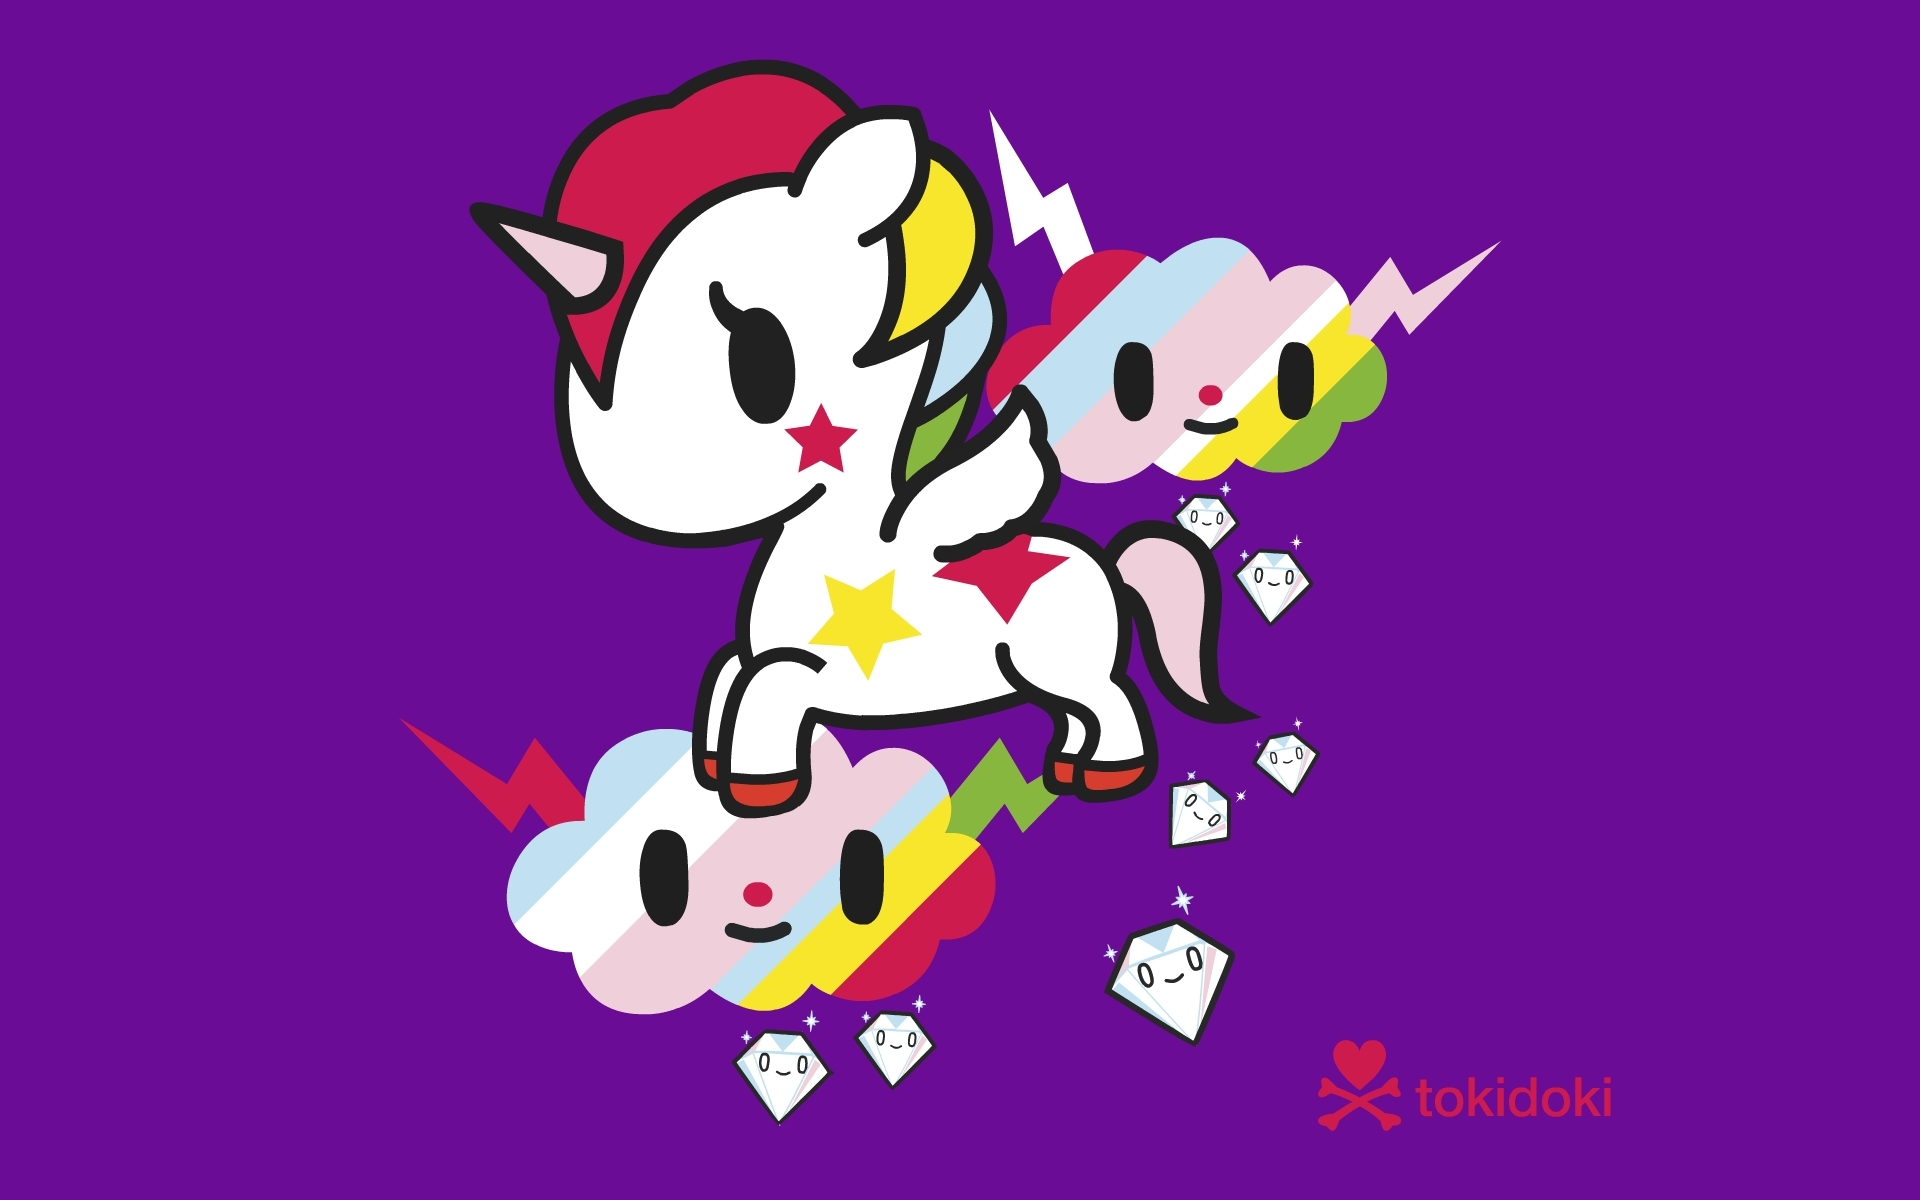 unicorns tokidoki HD Wallpaper